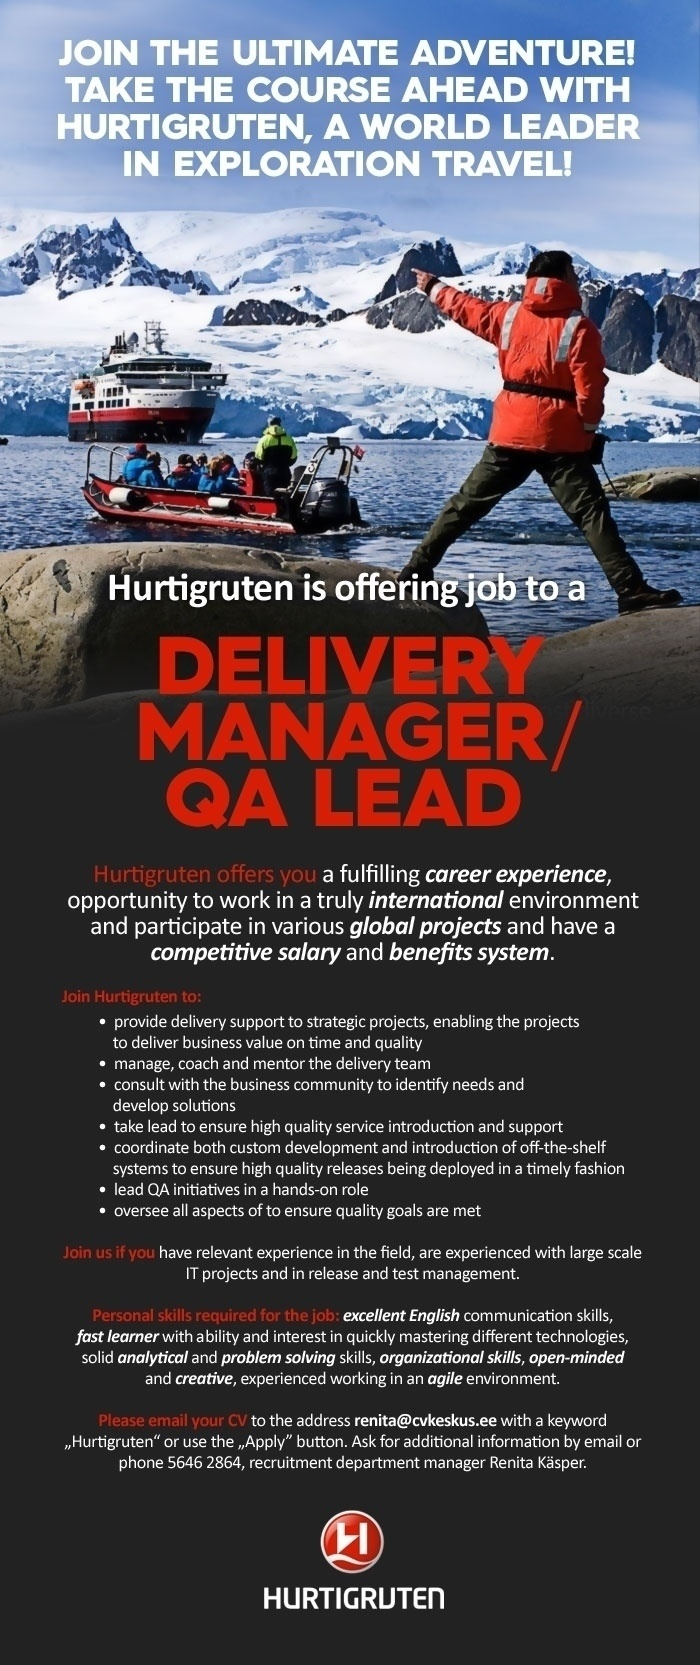 CV Market´s client Hurtigruten is looking for a Delivery Manager/ QA Lead